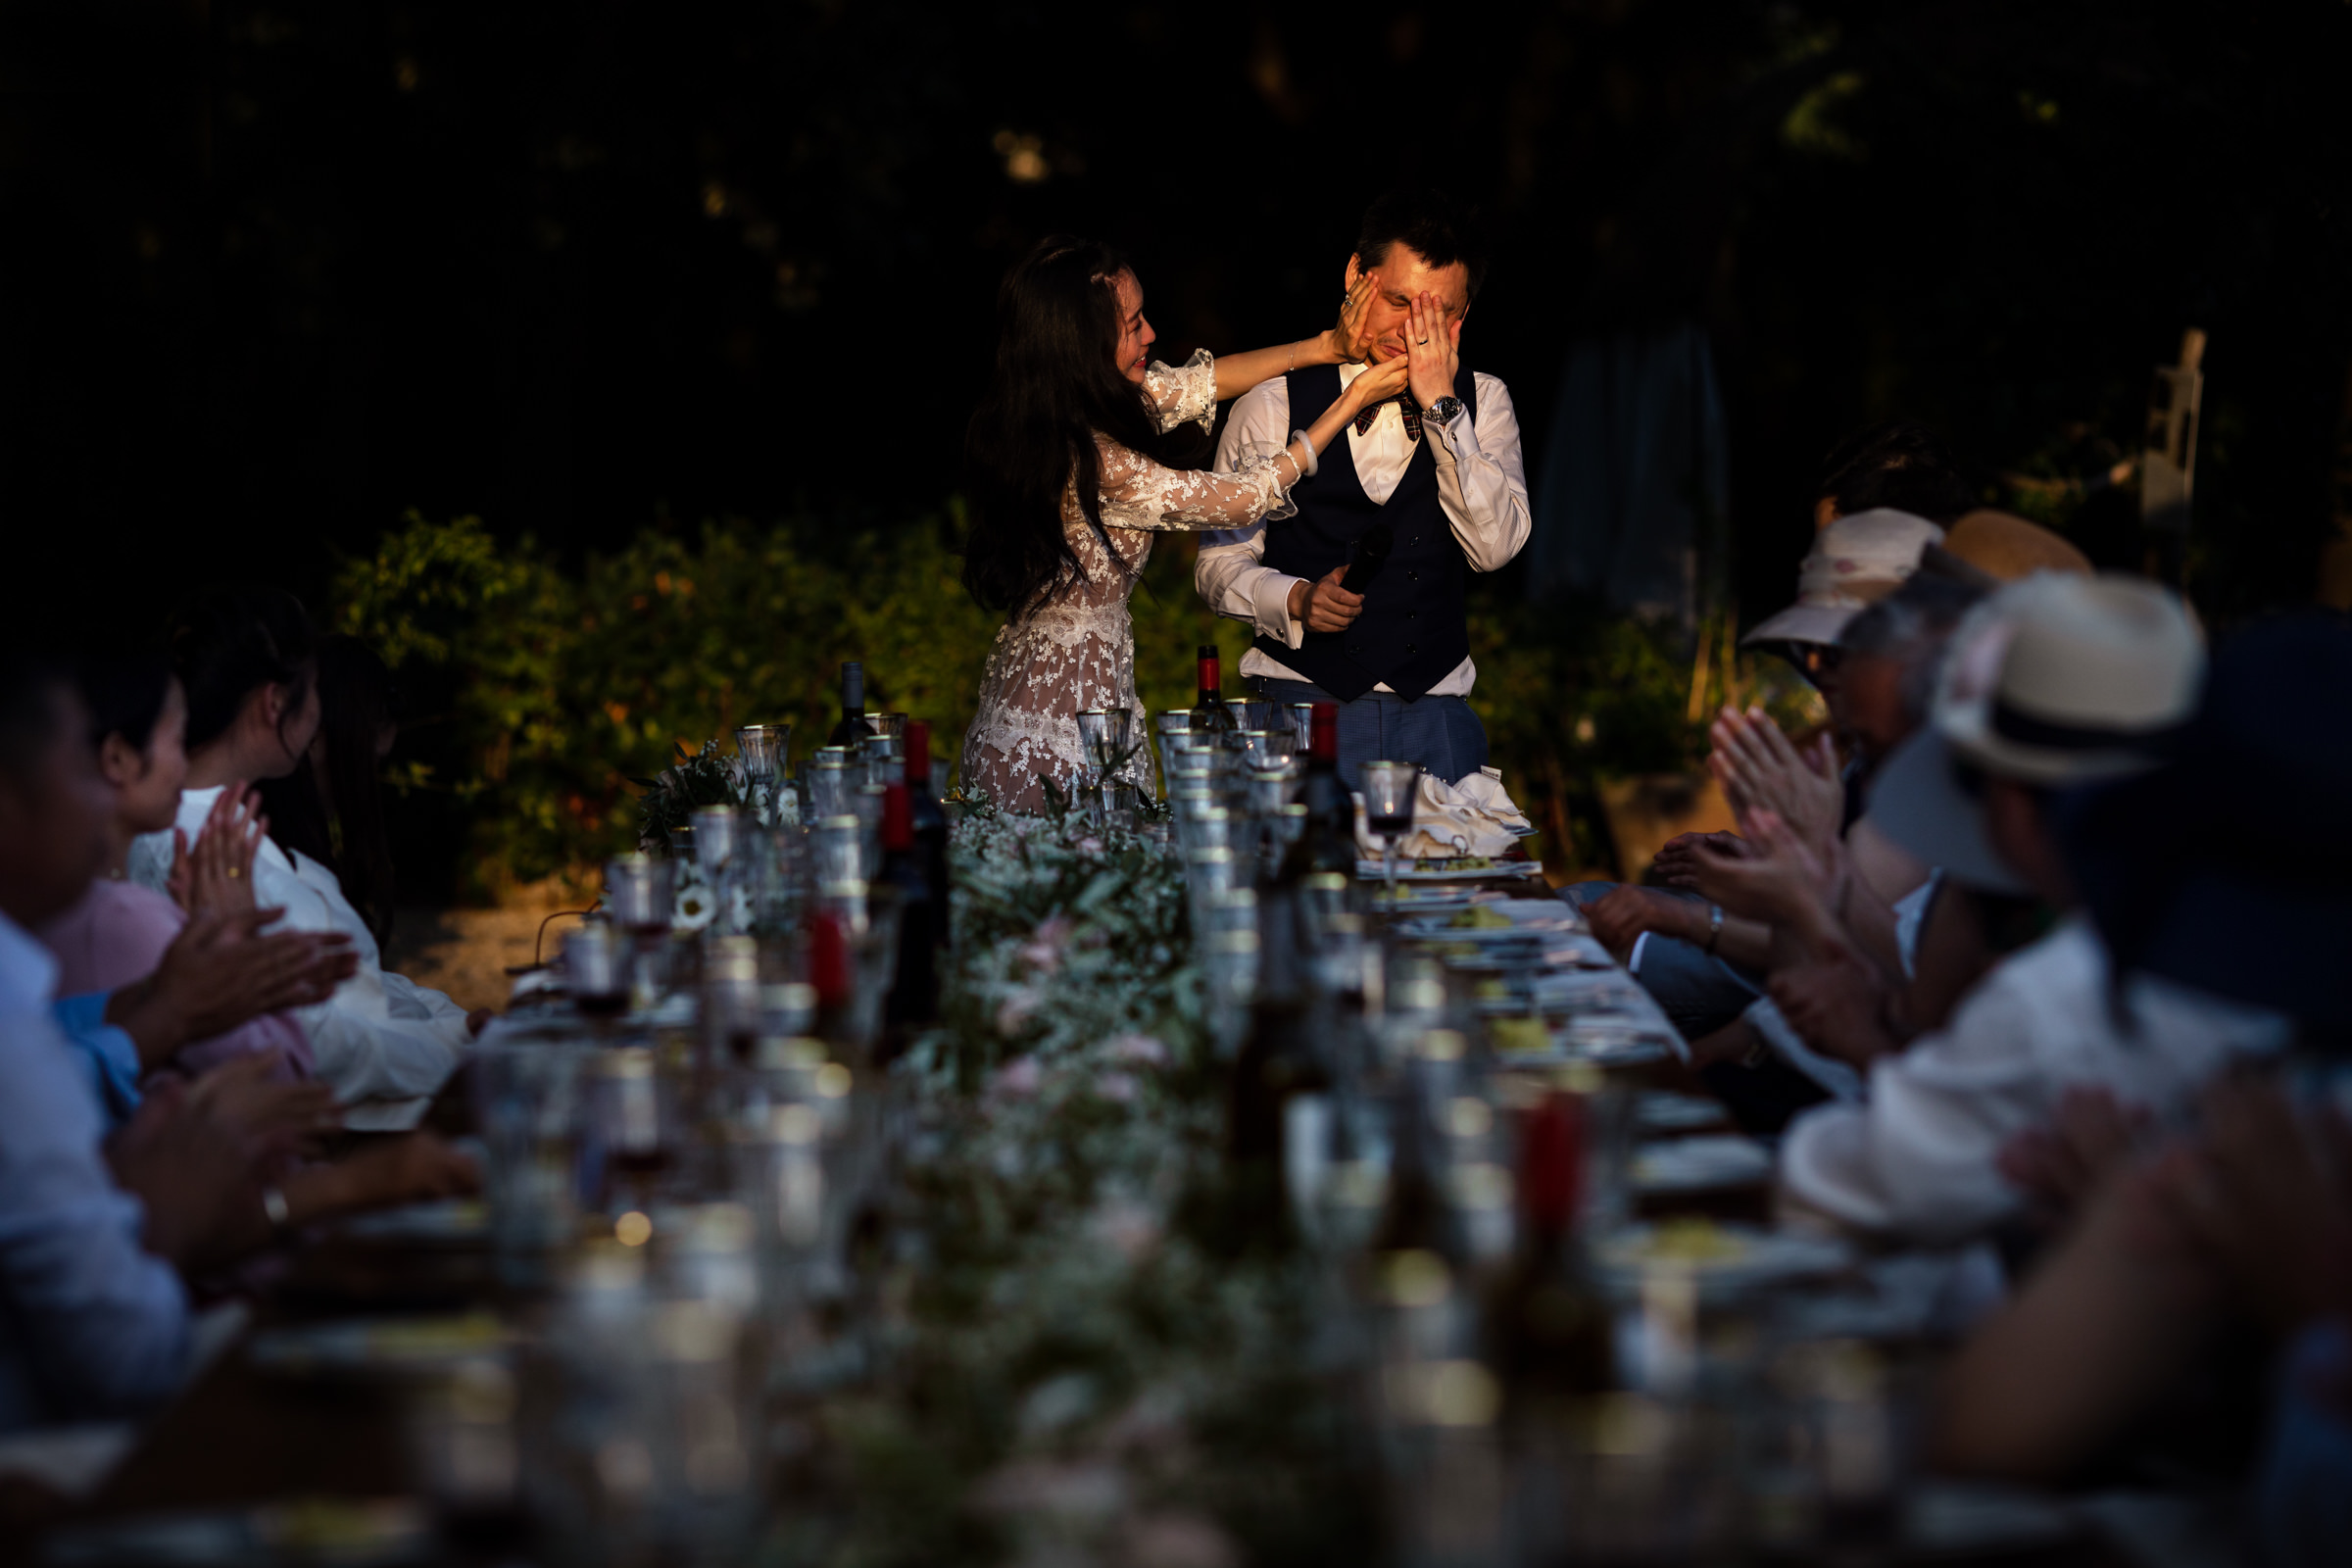 Groom cries as guests clap - photo by D2 Photography